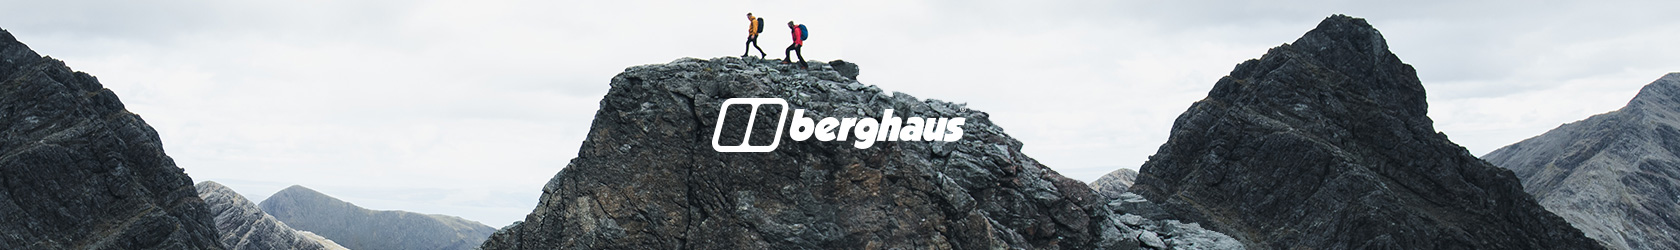 People are walking on top of the hill, wearing Berghaus gear.